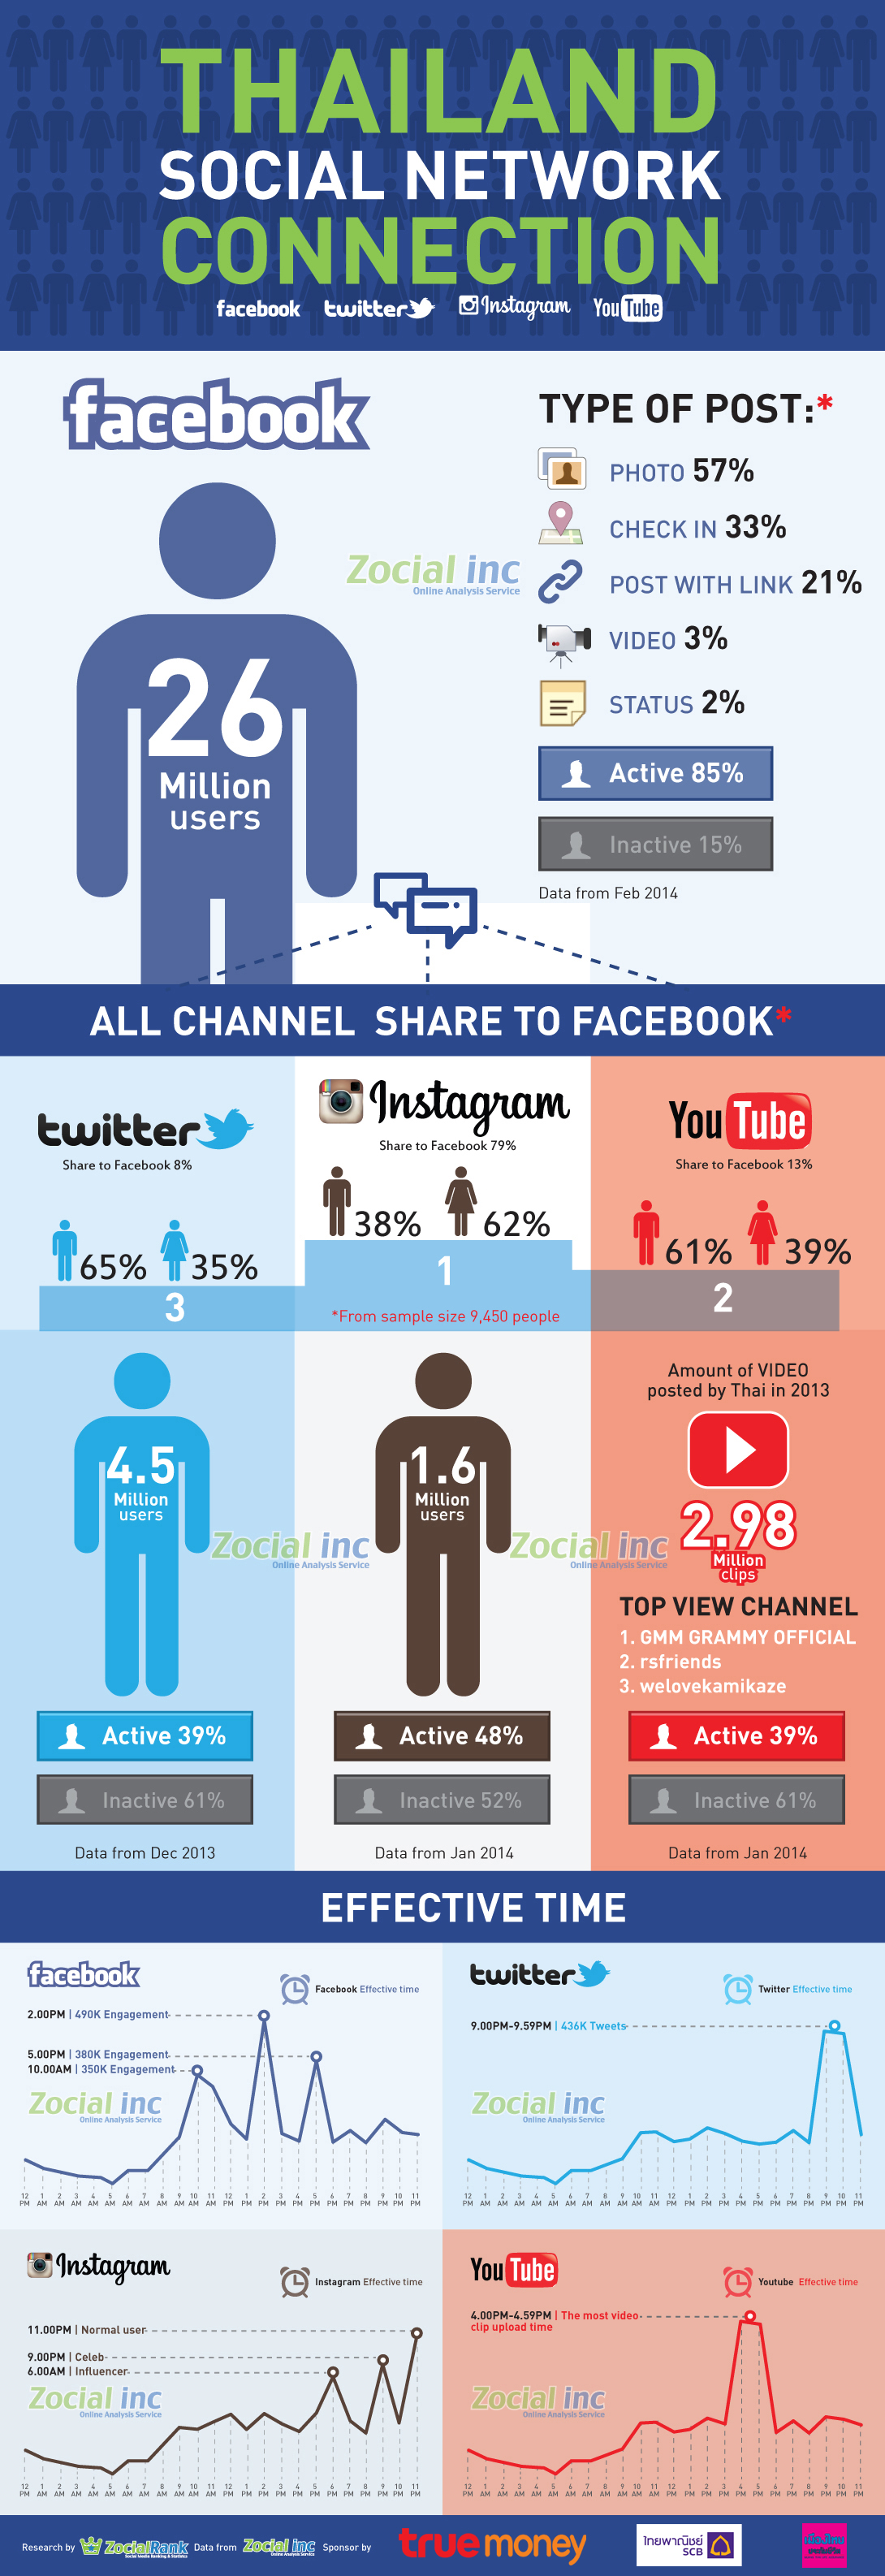 infographic-social-network-thailand